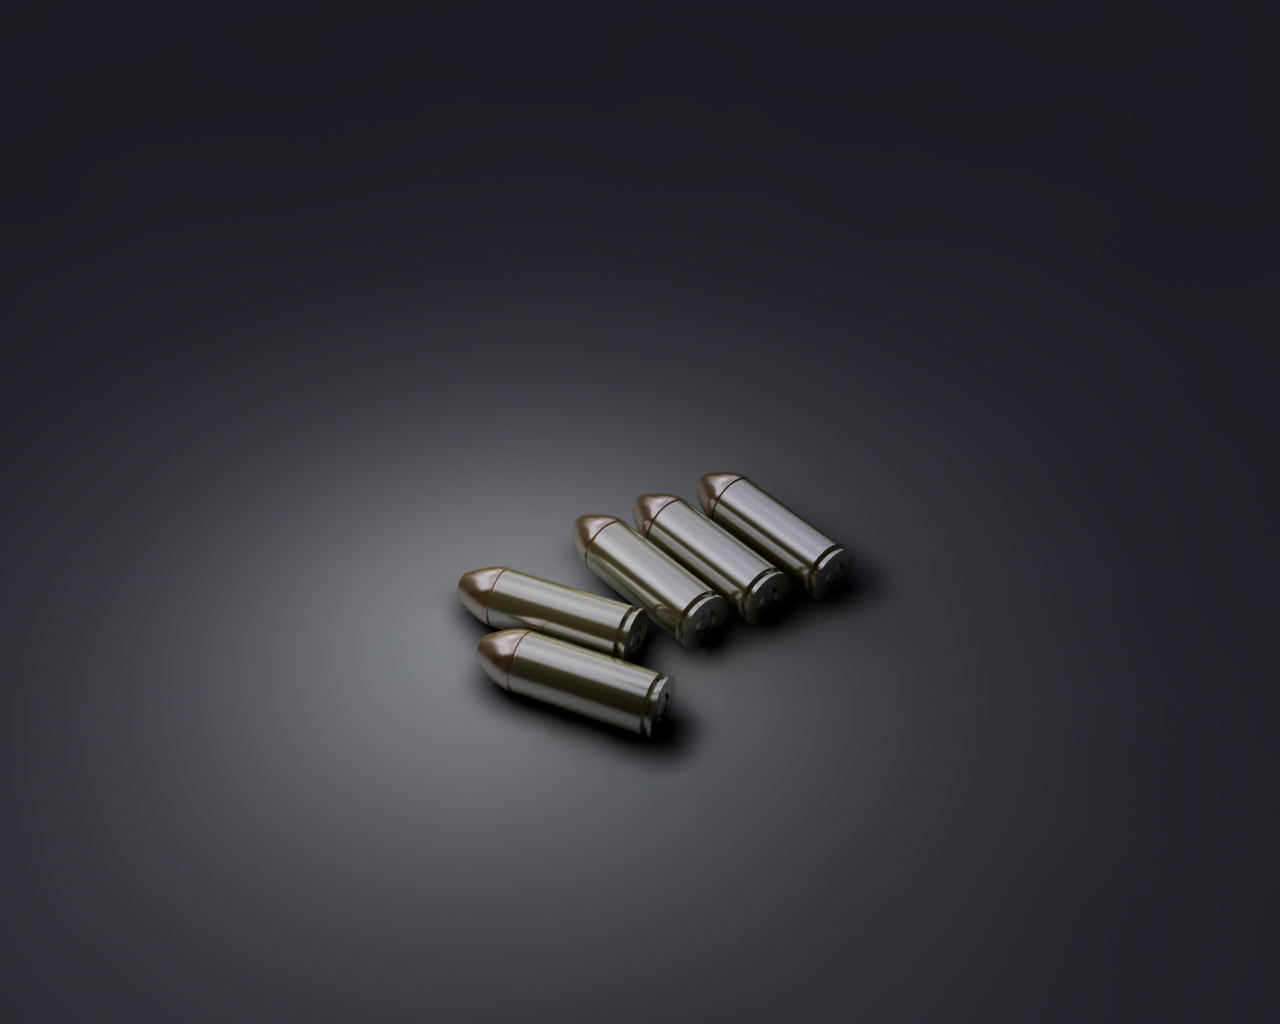 Bullet Pictures HD Ammo Wallpapers Military WallBase 1280x1024